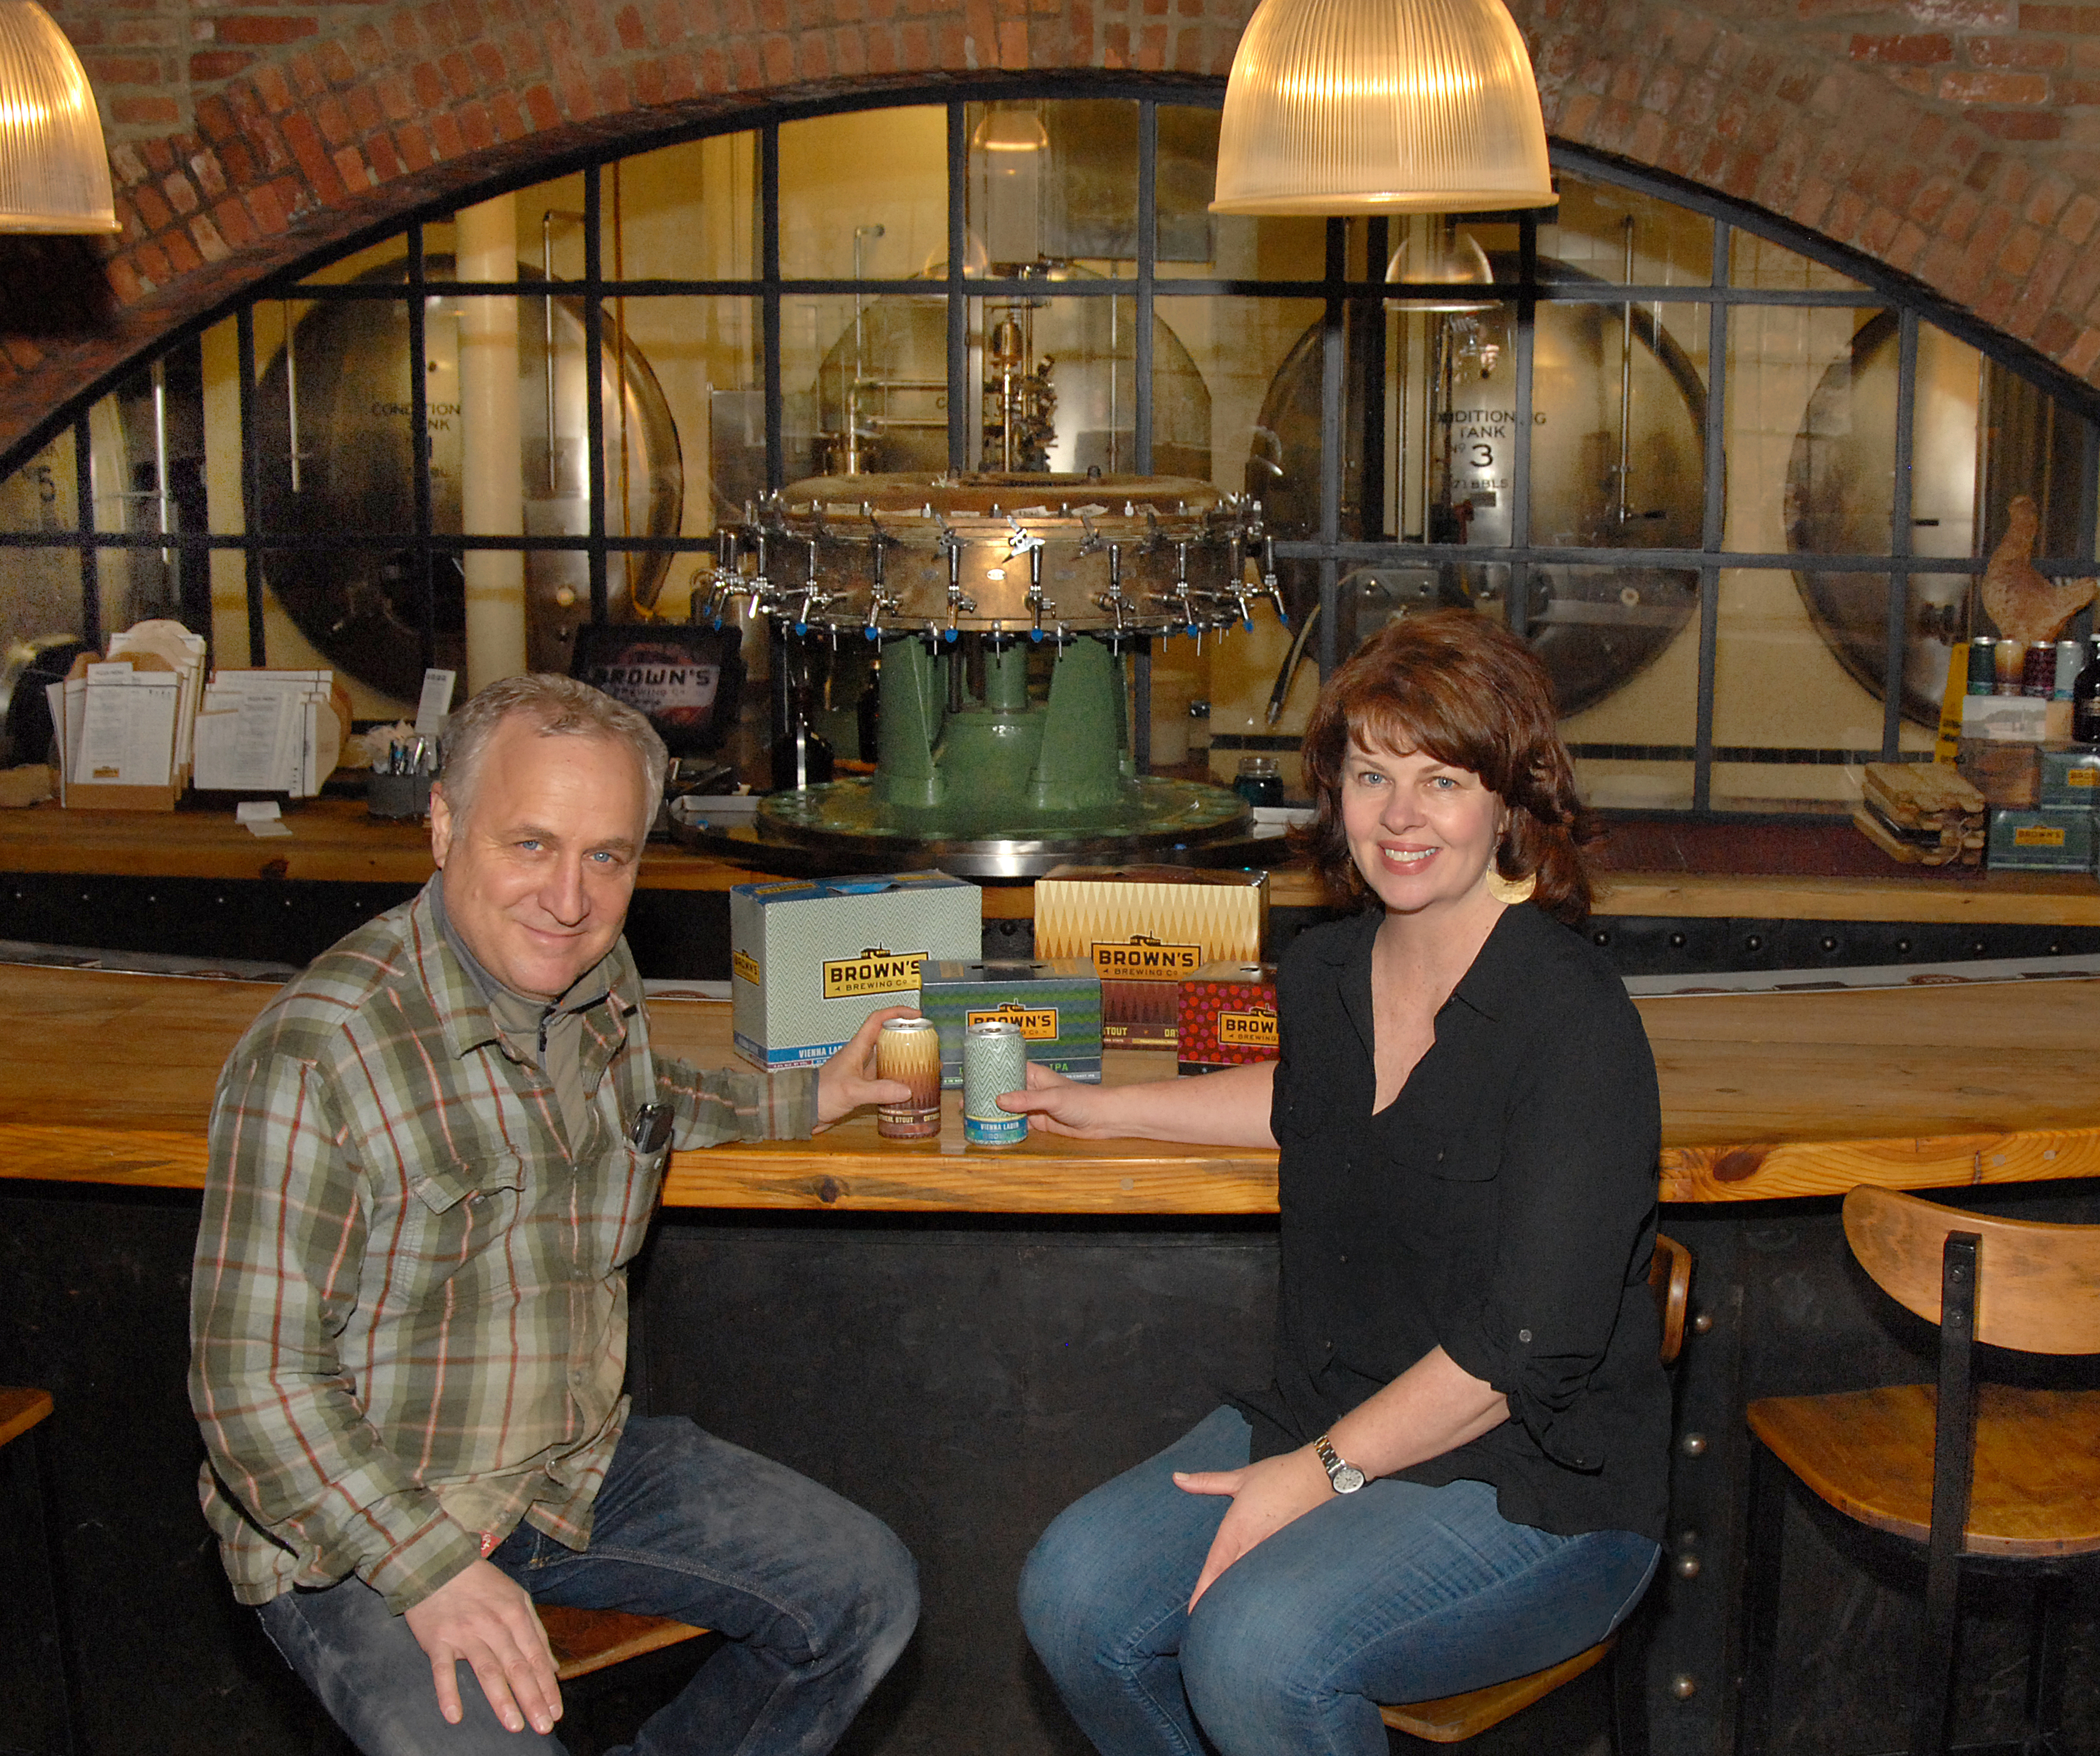 Brown's Brewing Company: From upstarts to idols